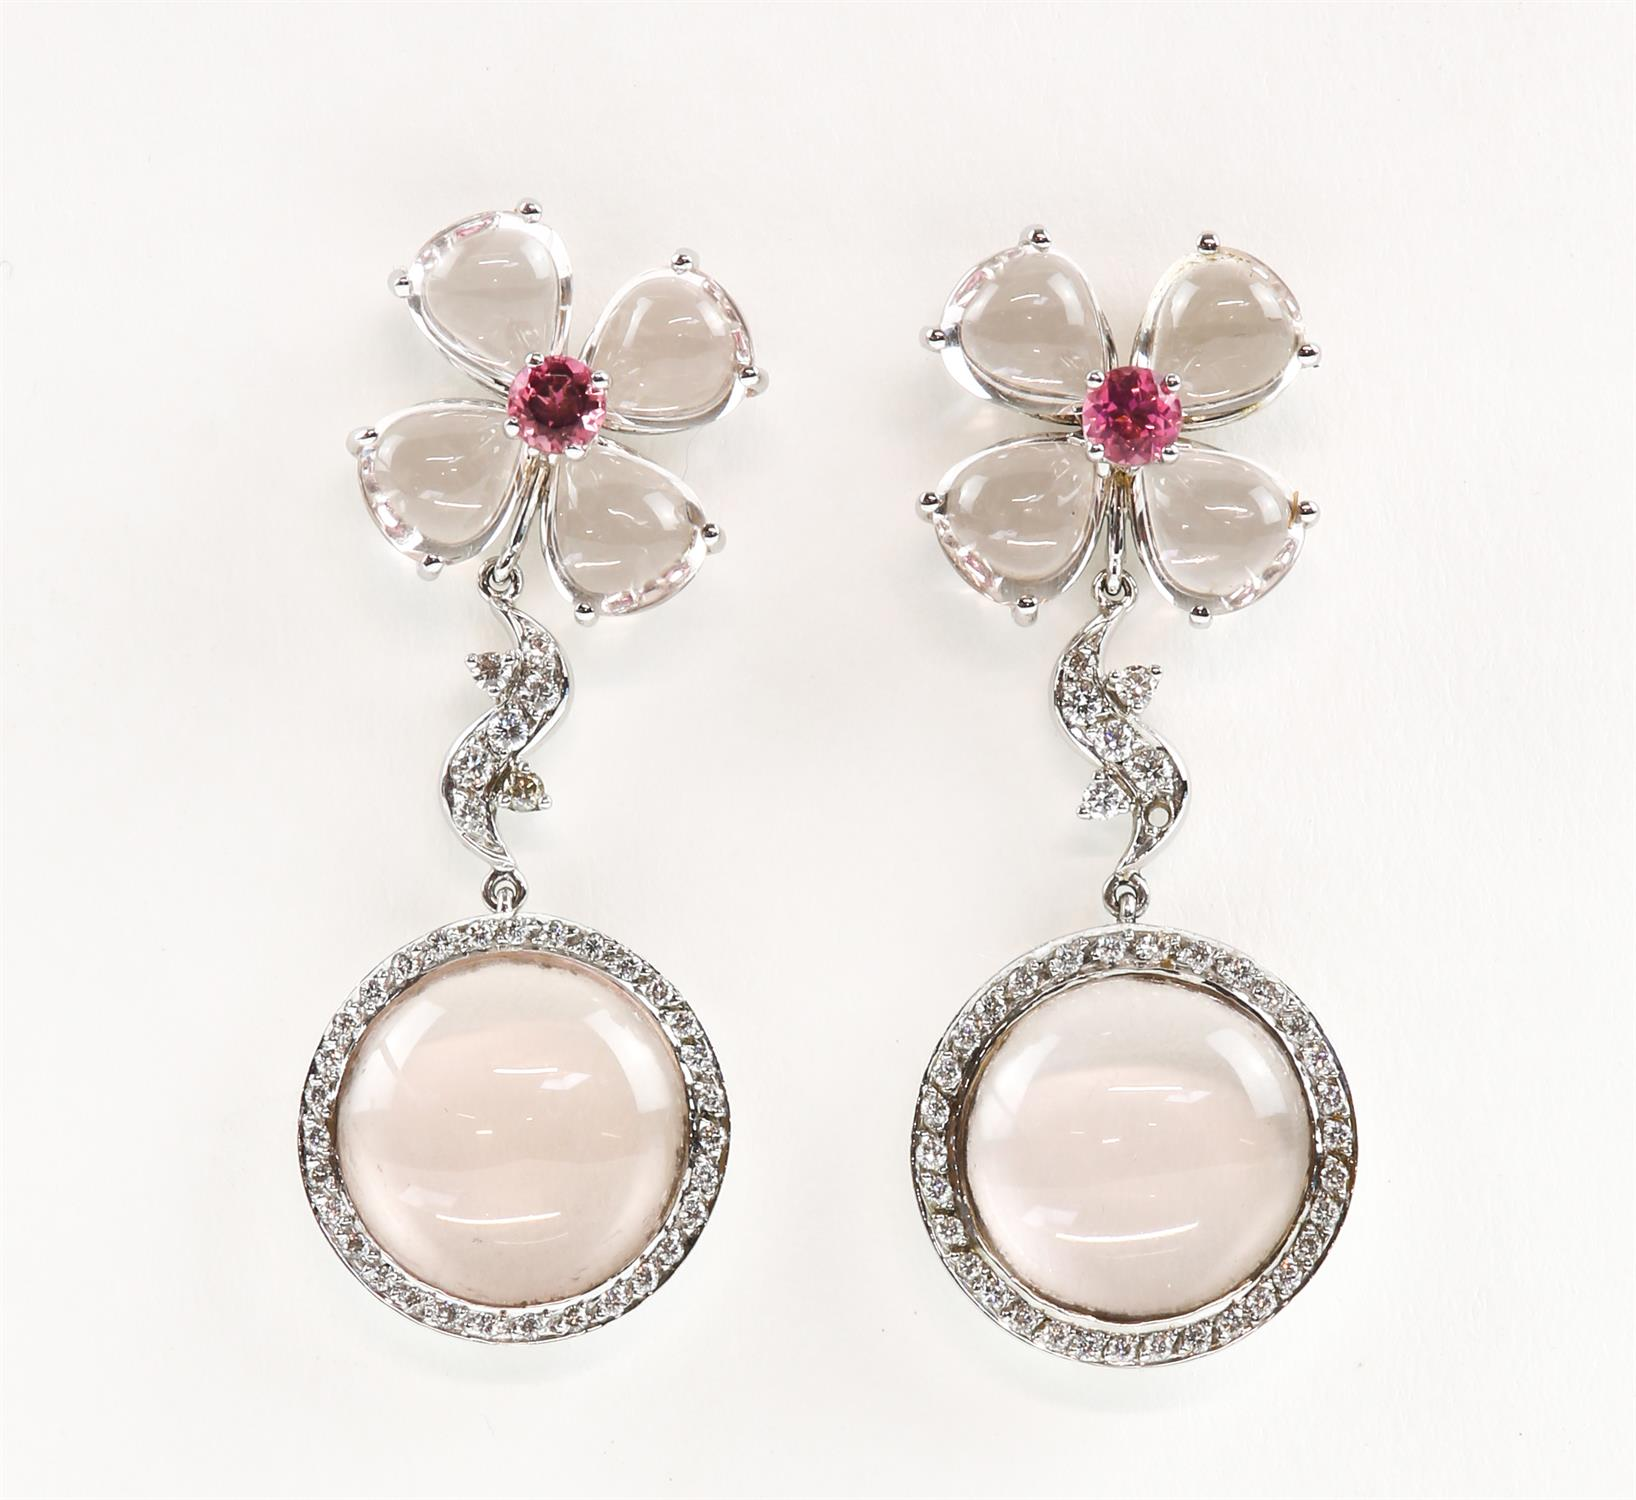 Pair of Gilan drop earrings, designed as a floral motif with a central synthetic pink spinel,